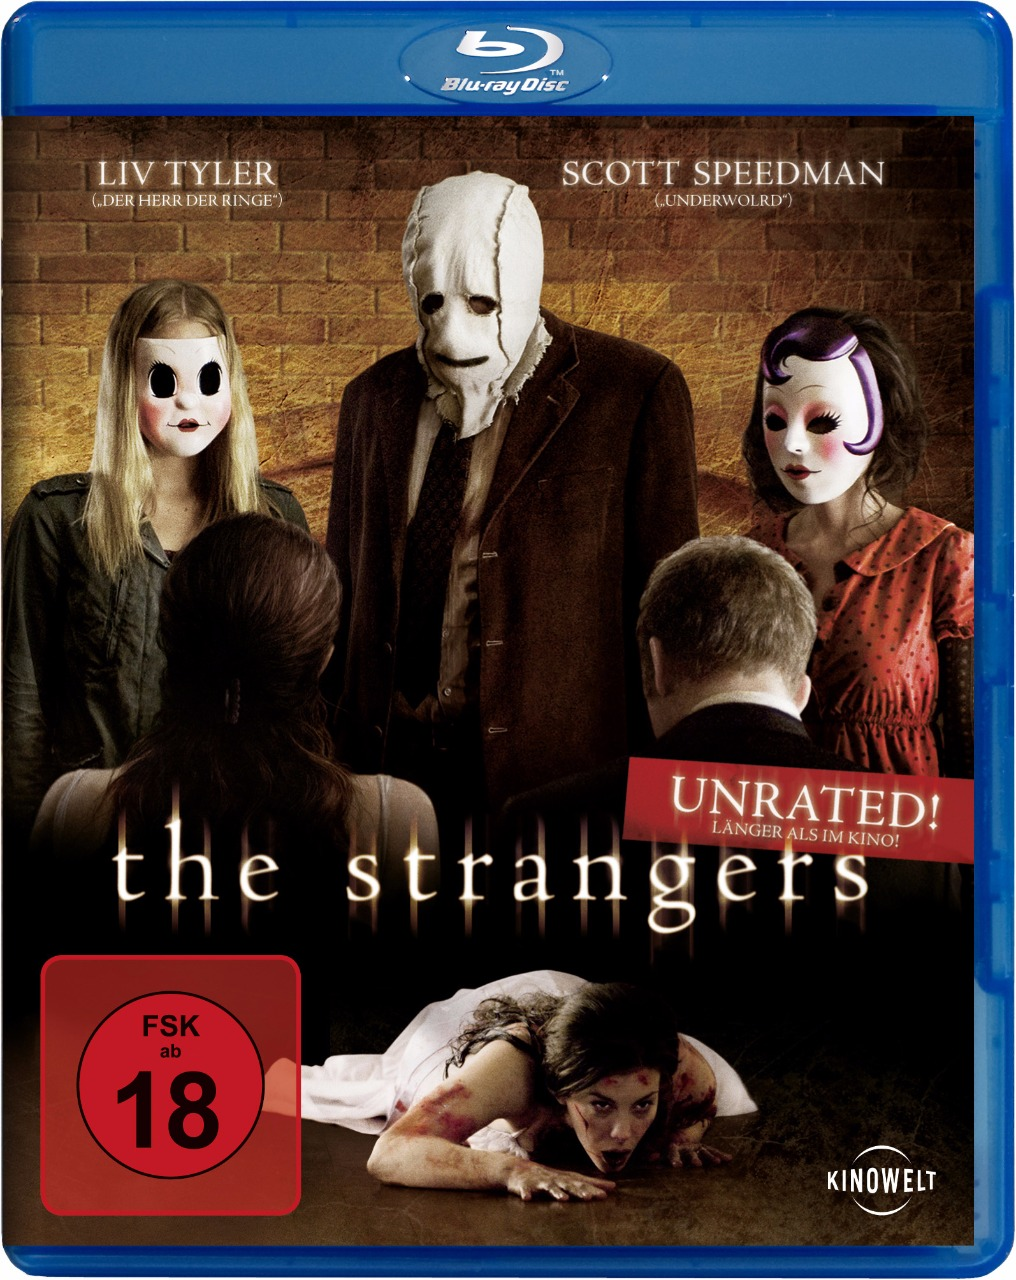 The Strangers ist als FSK18-Version ungeschnitten erschienen. (©Studiocanal Home Entertainment)